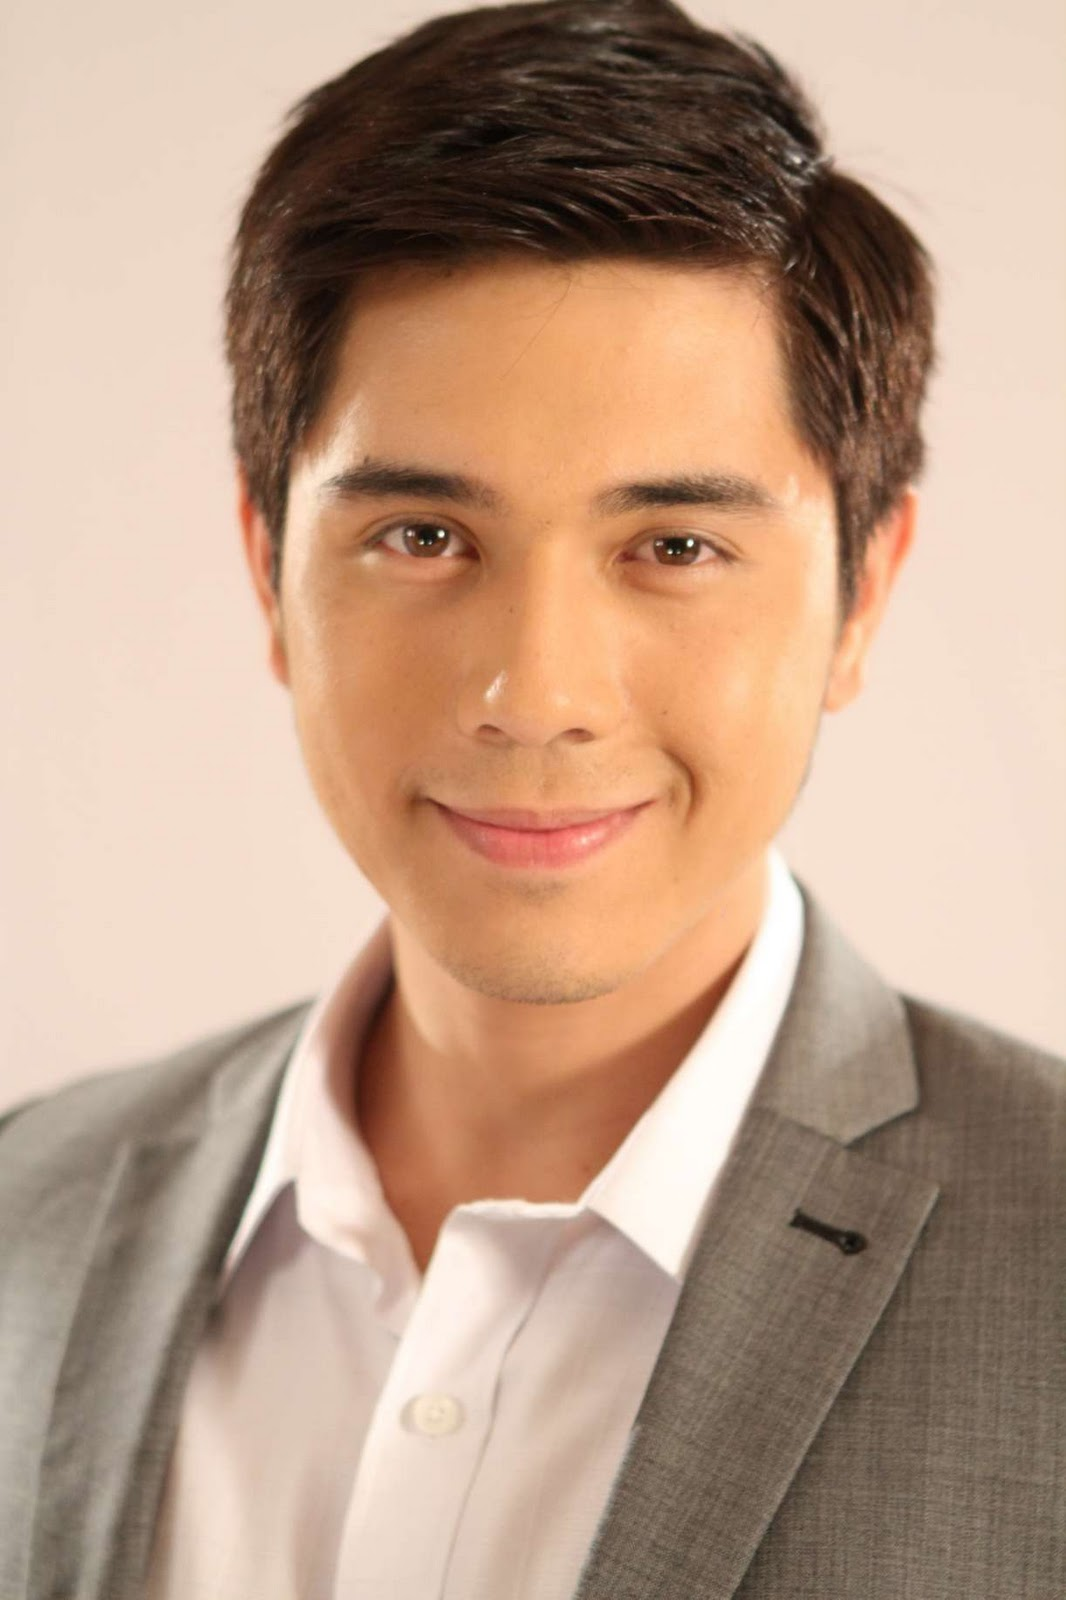 Paulo_Avelino_Hot http://www.showbiz-portal.com/2011/12/paulo-avelino-in-yesterday-today.html